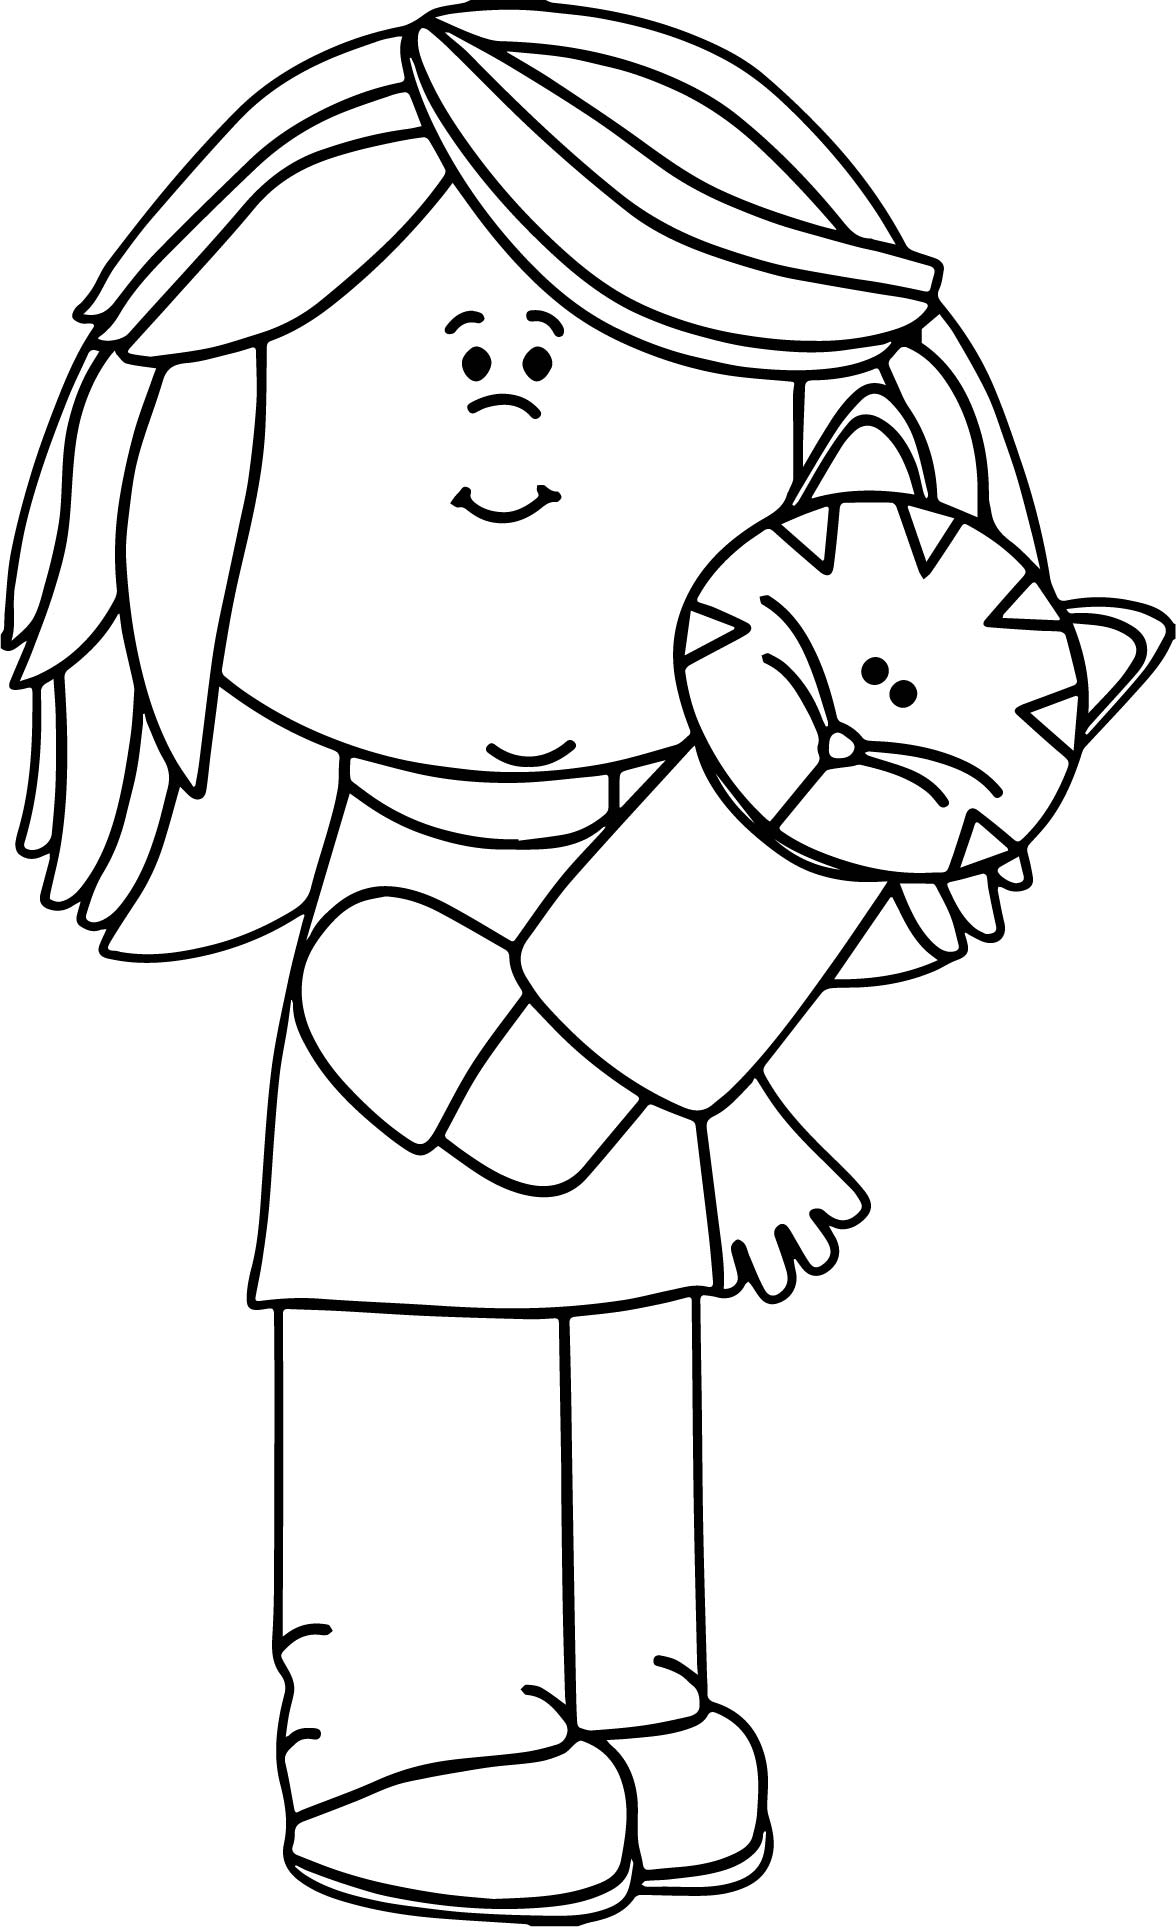 1176x1927 Marionette Coloring Page